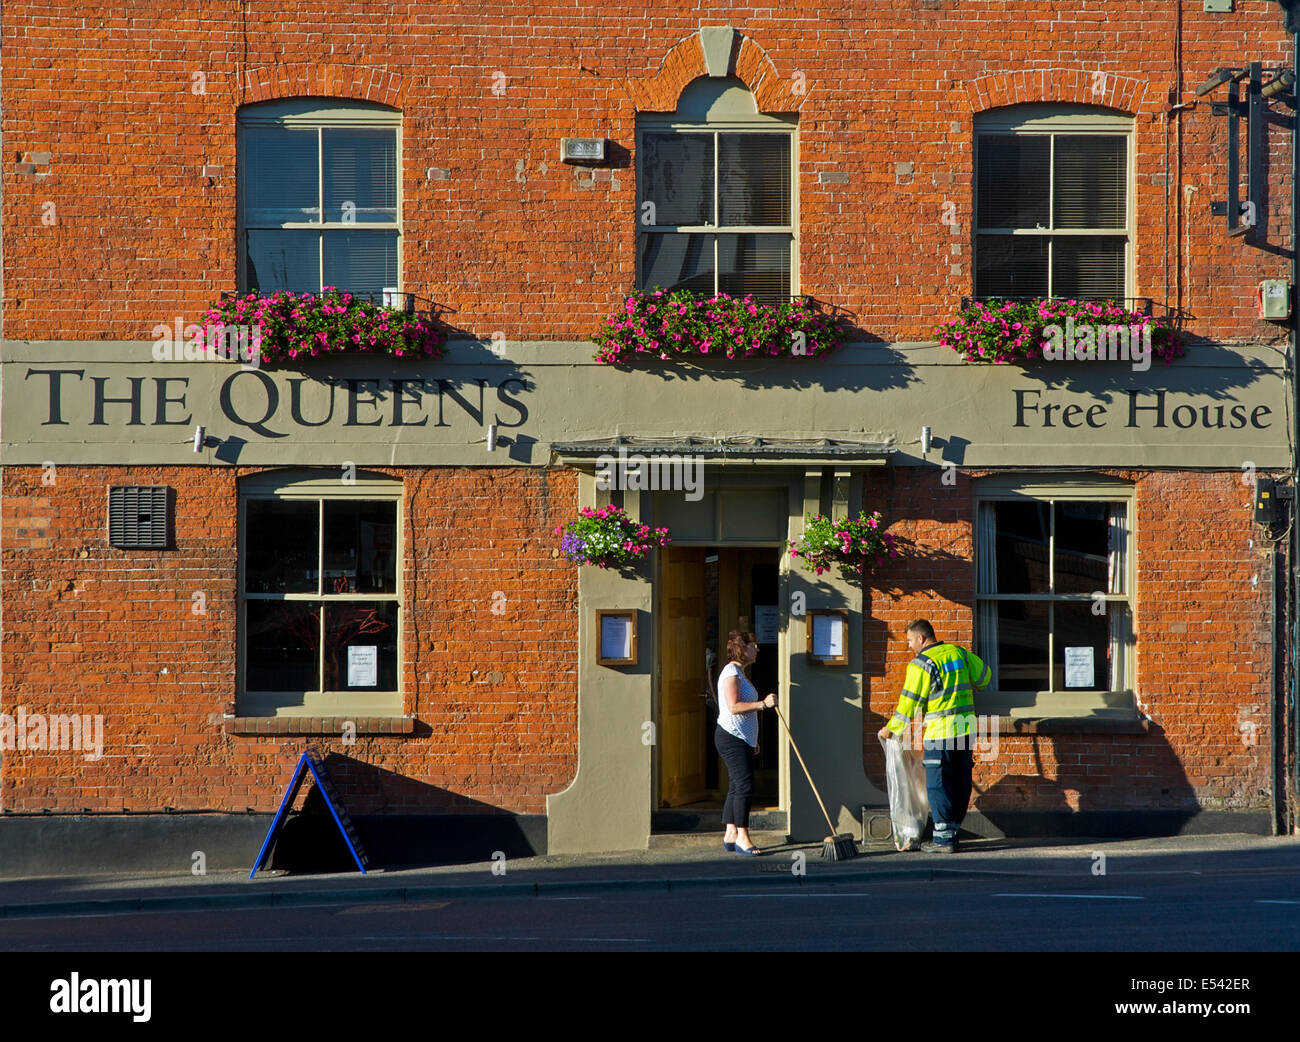 Sweeping up rubbish outside the Queens, Ludlow, Shropshire, England UK - Stock Image